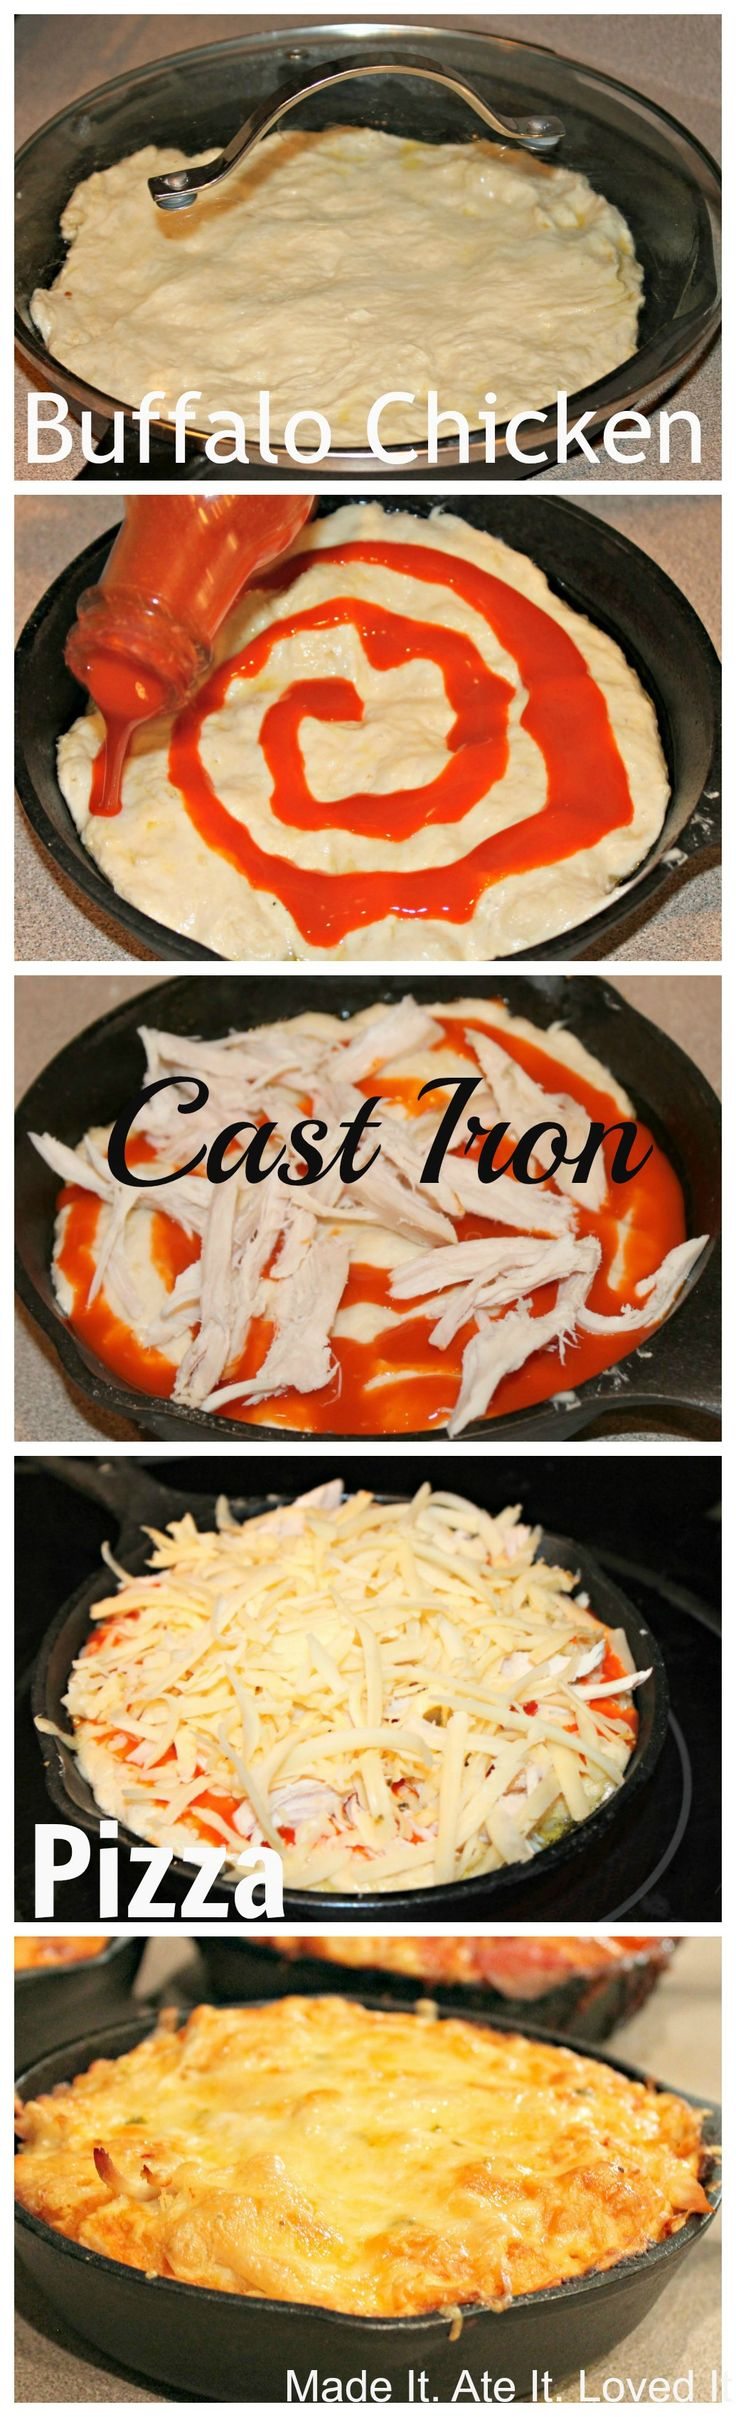 I LOVE Buffalo Chicken - might have to try this out sometime very soon!